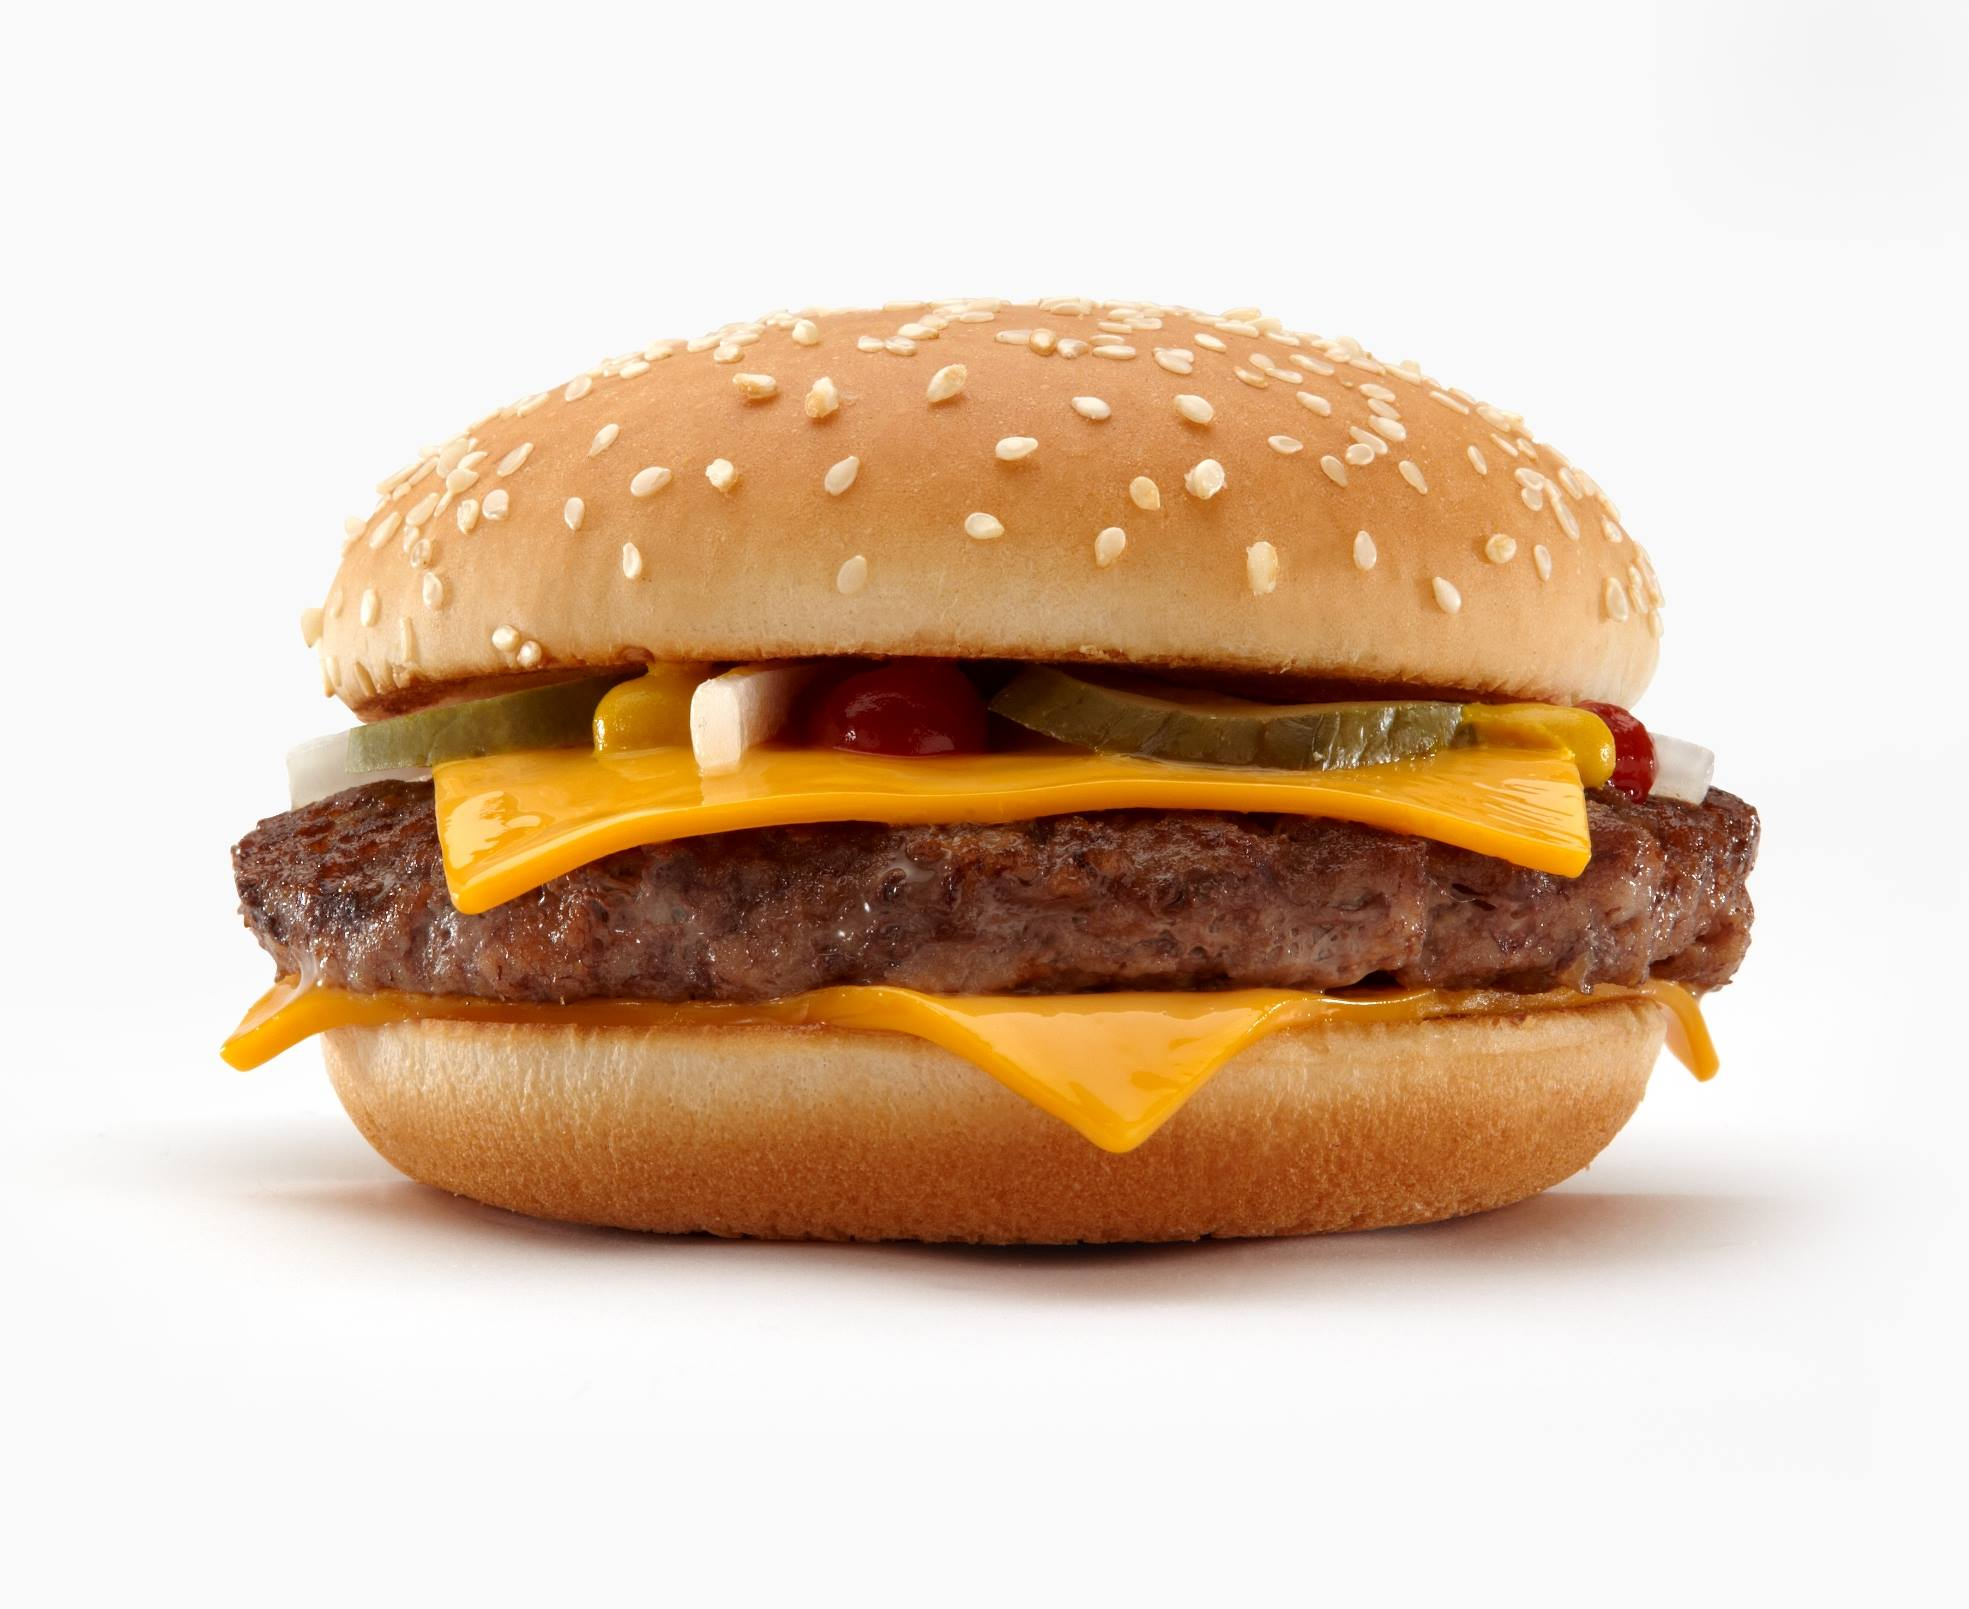 Photo from McDonald's Facebook page. The Quarter Pounder with Cheese is getting a fresh makeover.